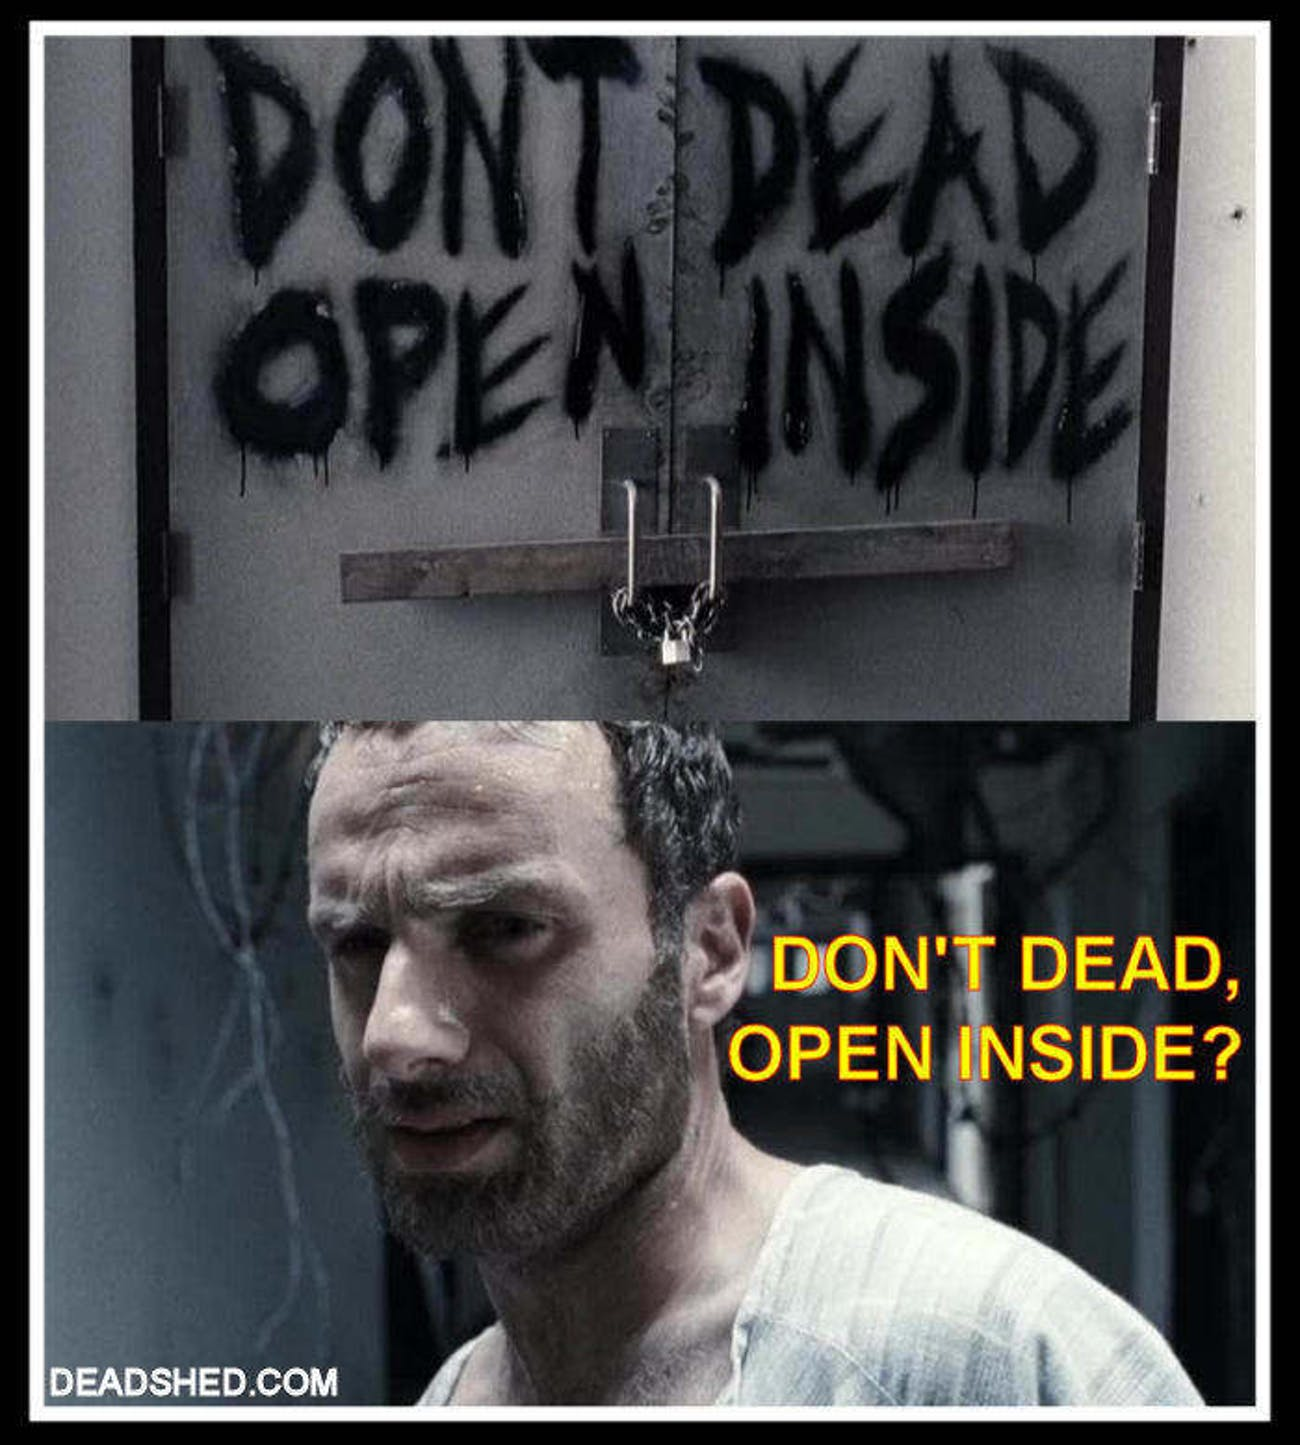 The 25 Best Memes From 'The Walking Dead'